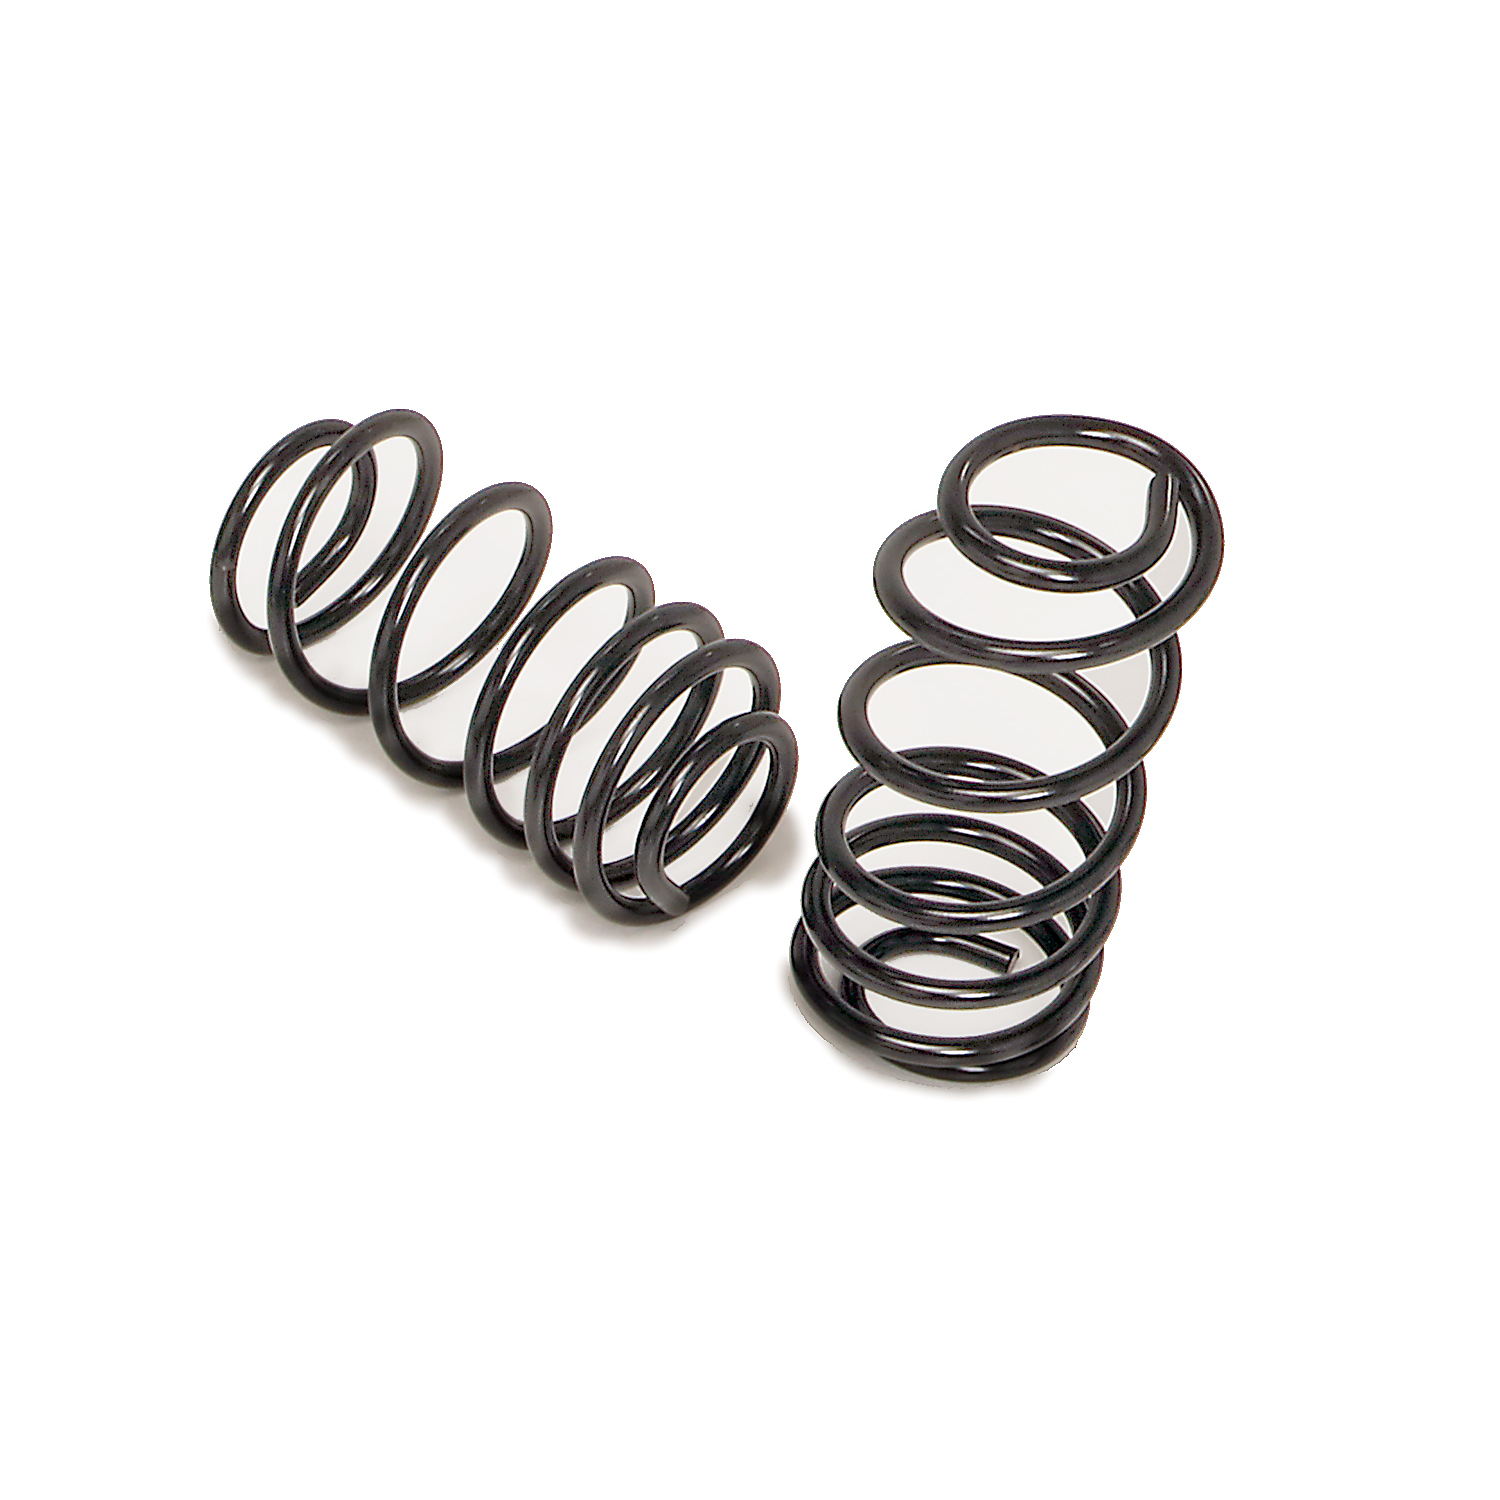 hight resolution of 1965 1966 ford galaxie rear coil springs by hotchkis